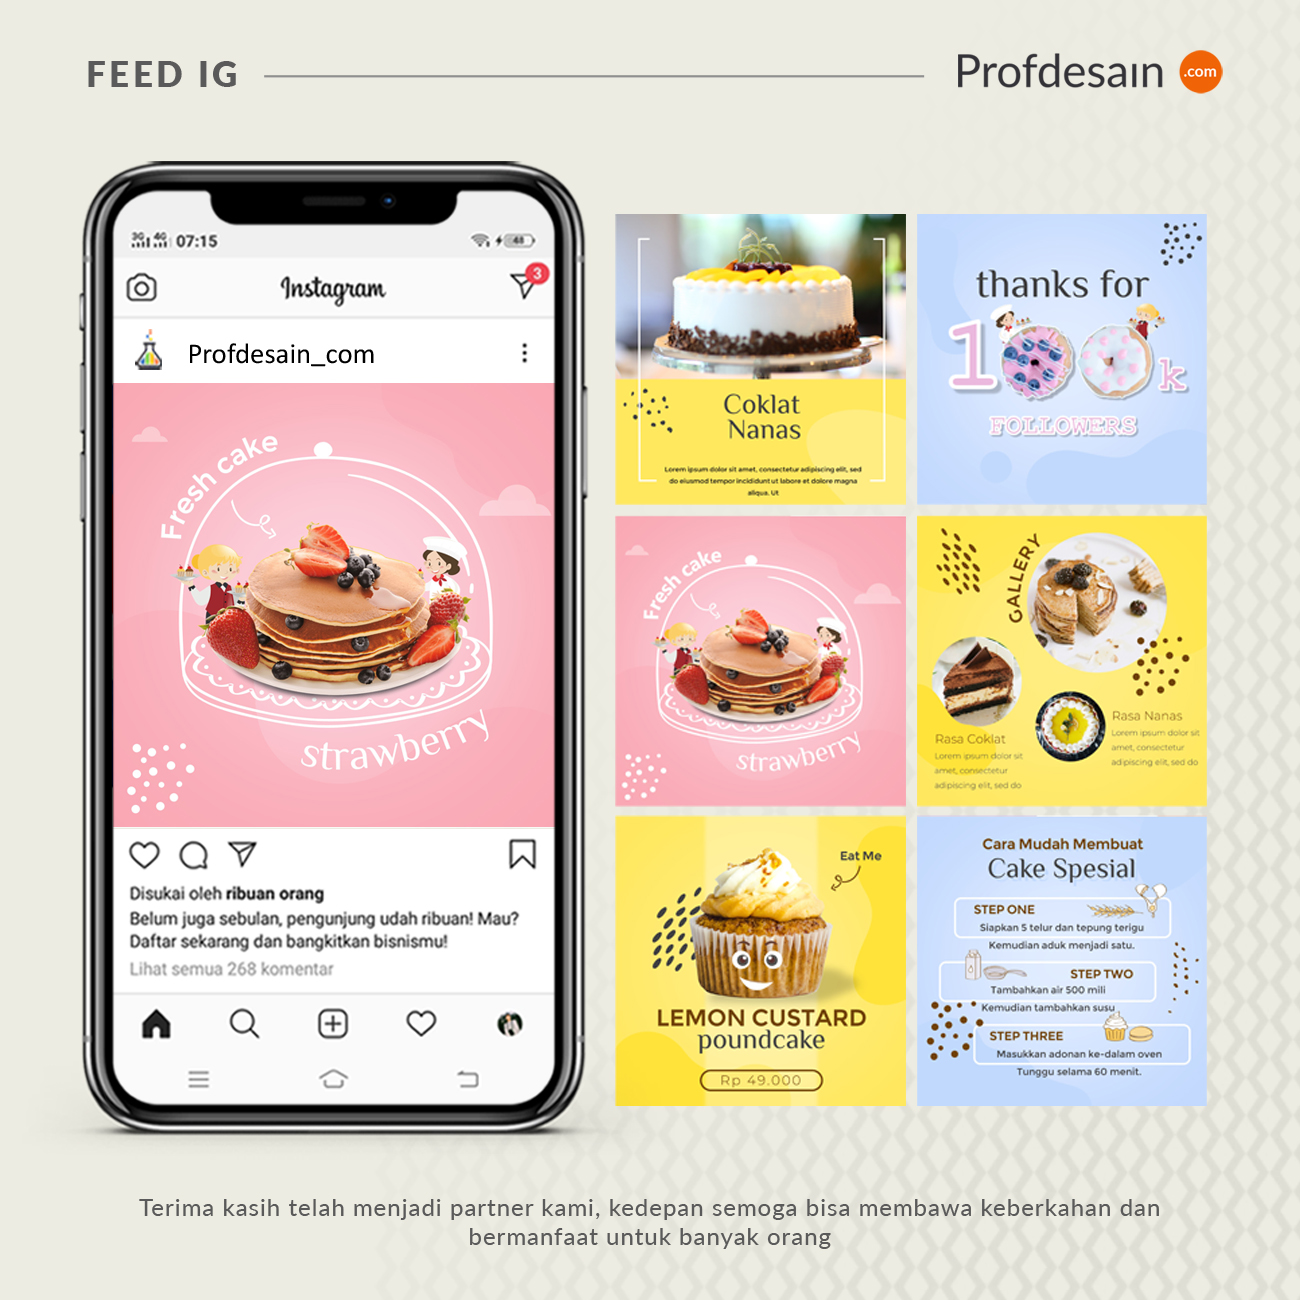 jasa desain feed instagram food and beverage 2